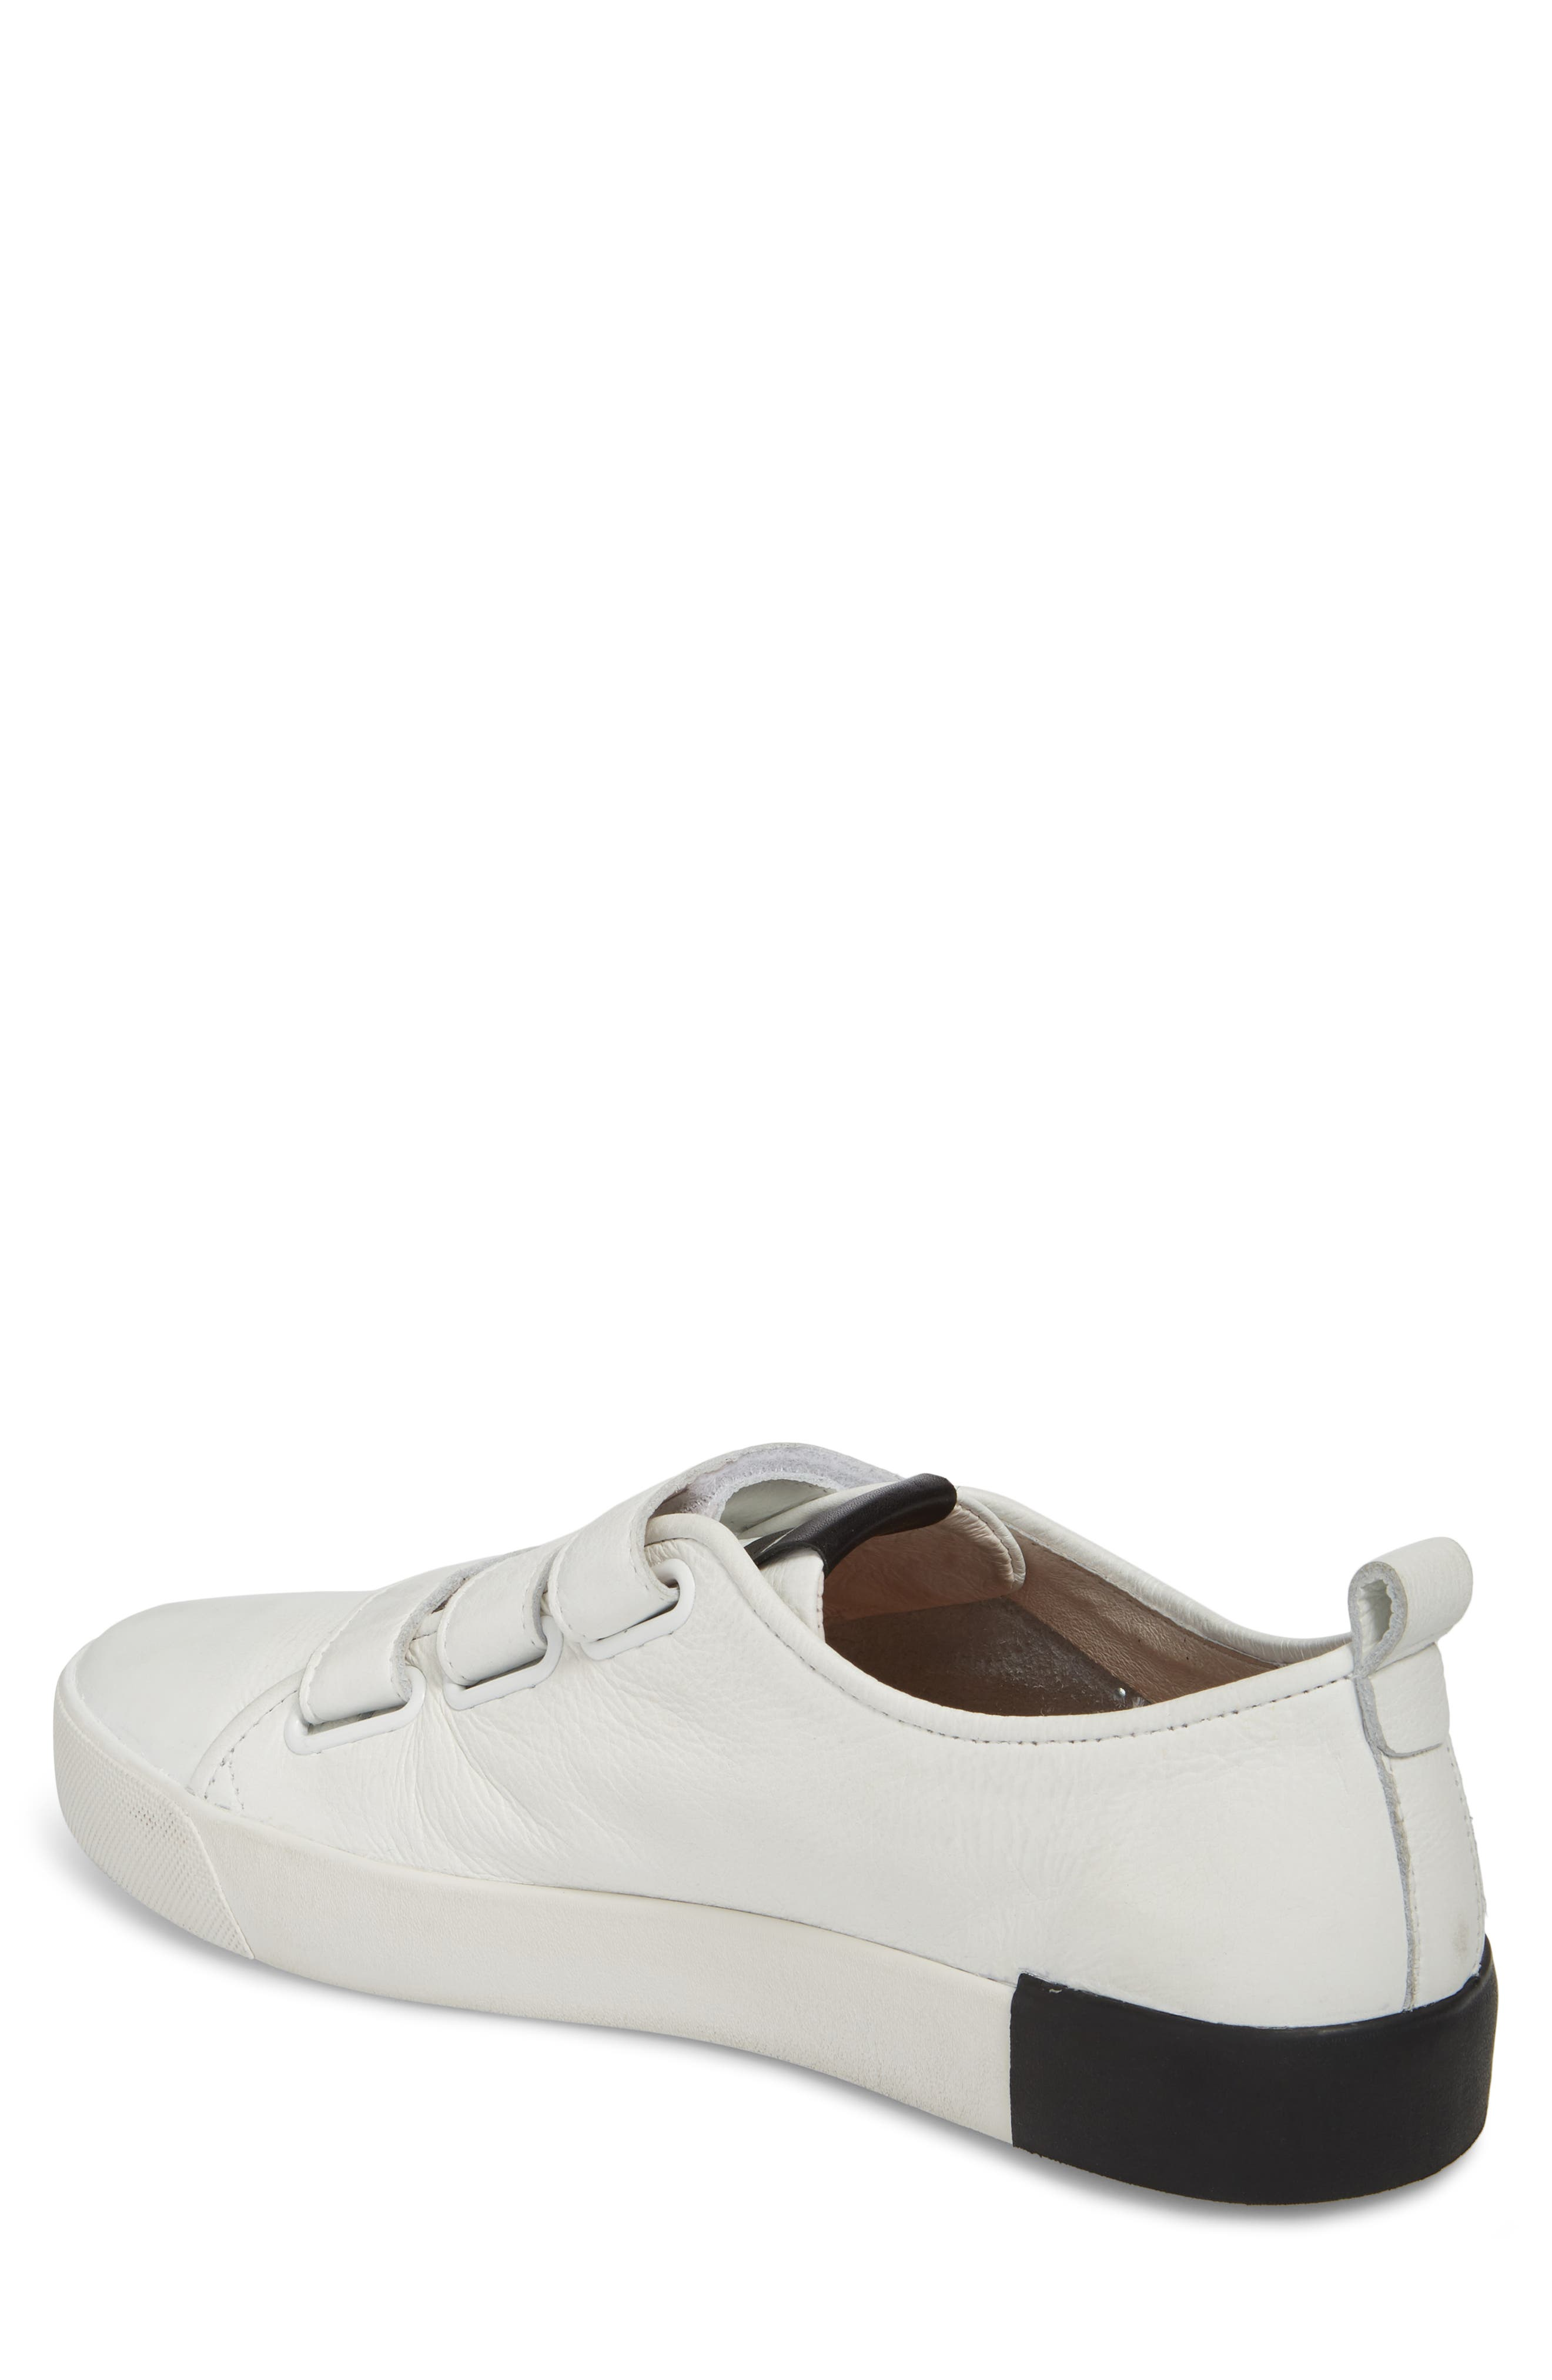 PM41 Low Top Sneaker,                             Alternate thumbnail 2, color,                             WHITE LEATHER